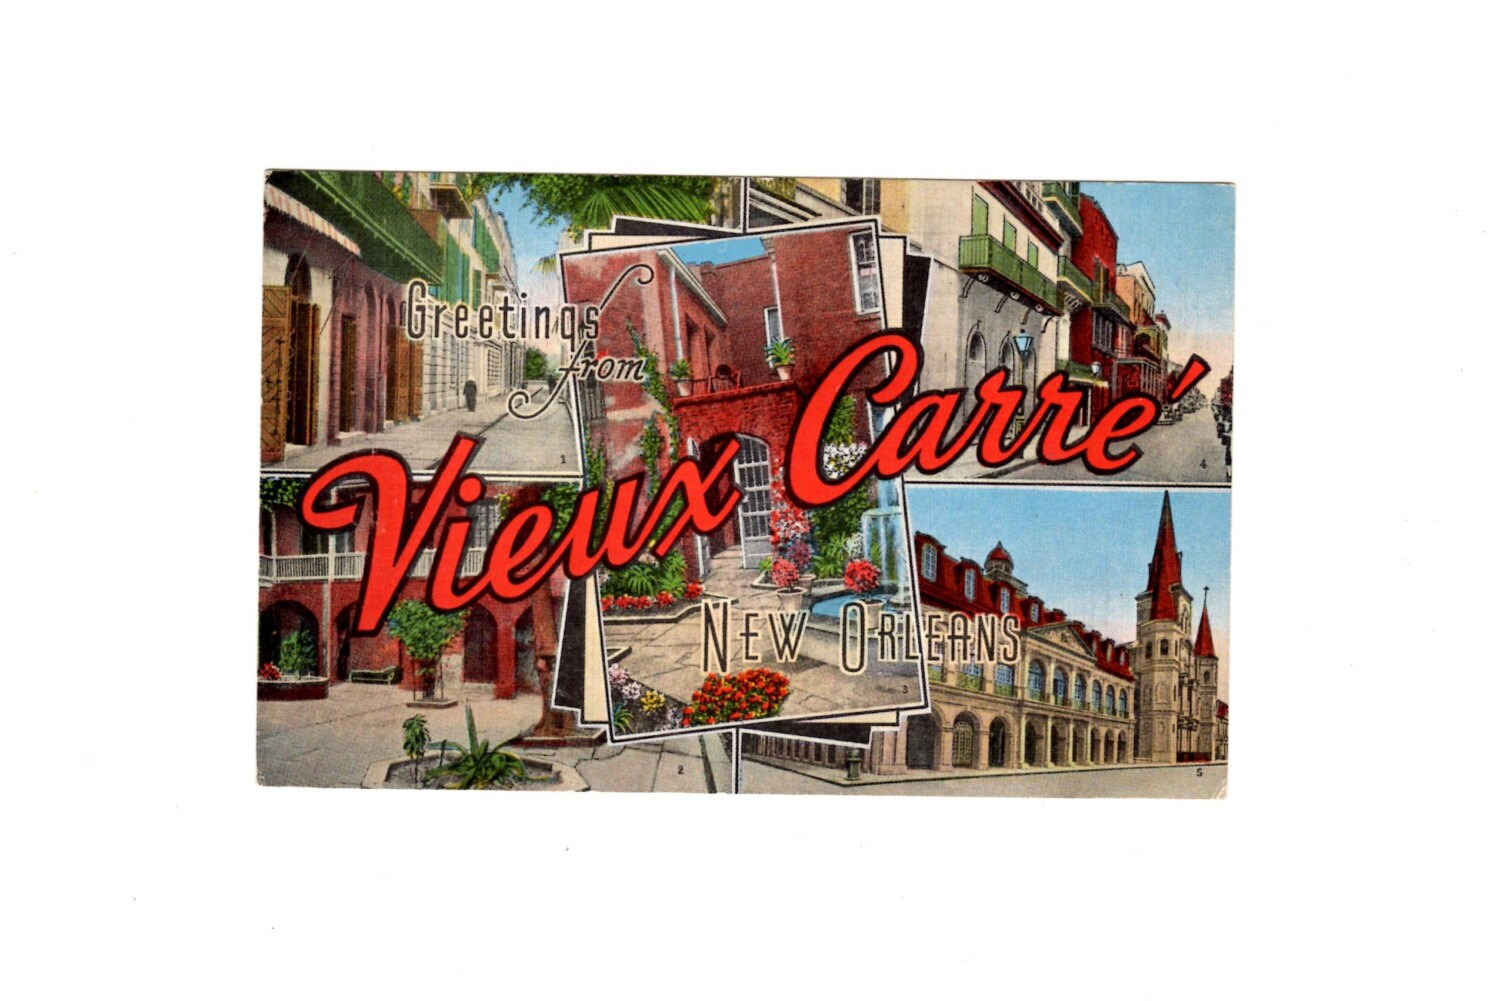 Greetings From Vieux Carre New Orleans Vintage French Quarter Etsy